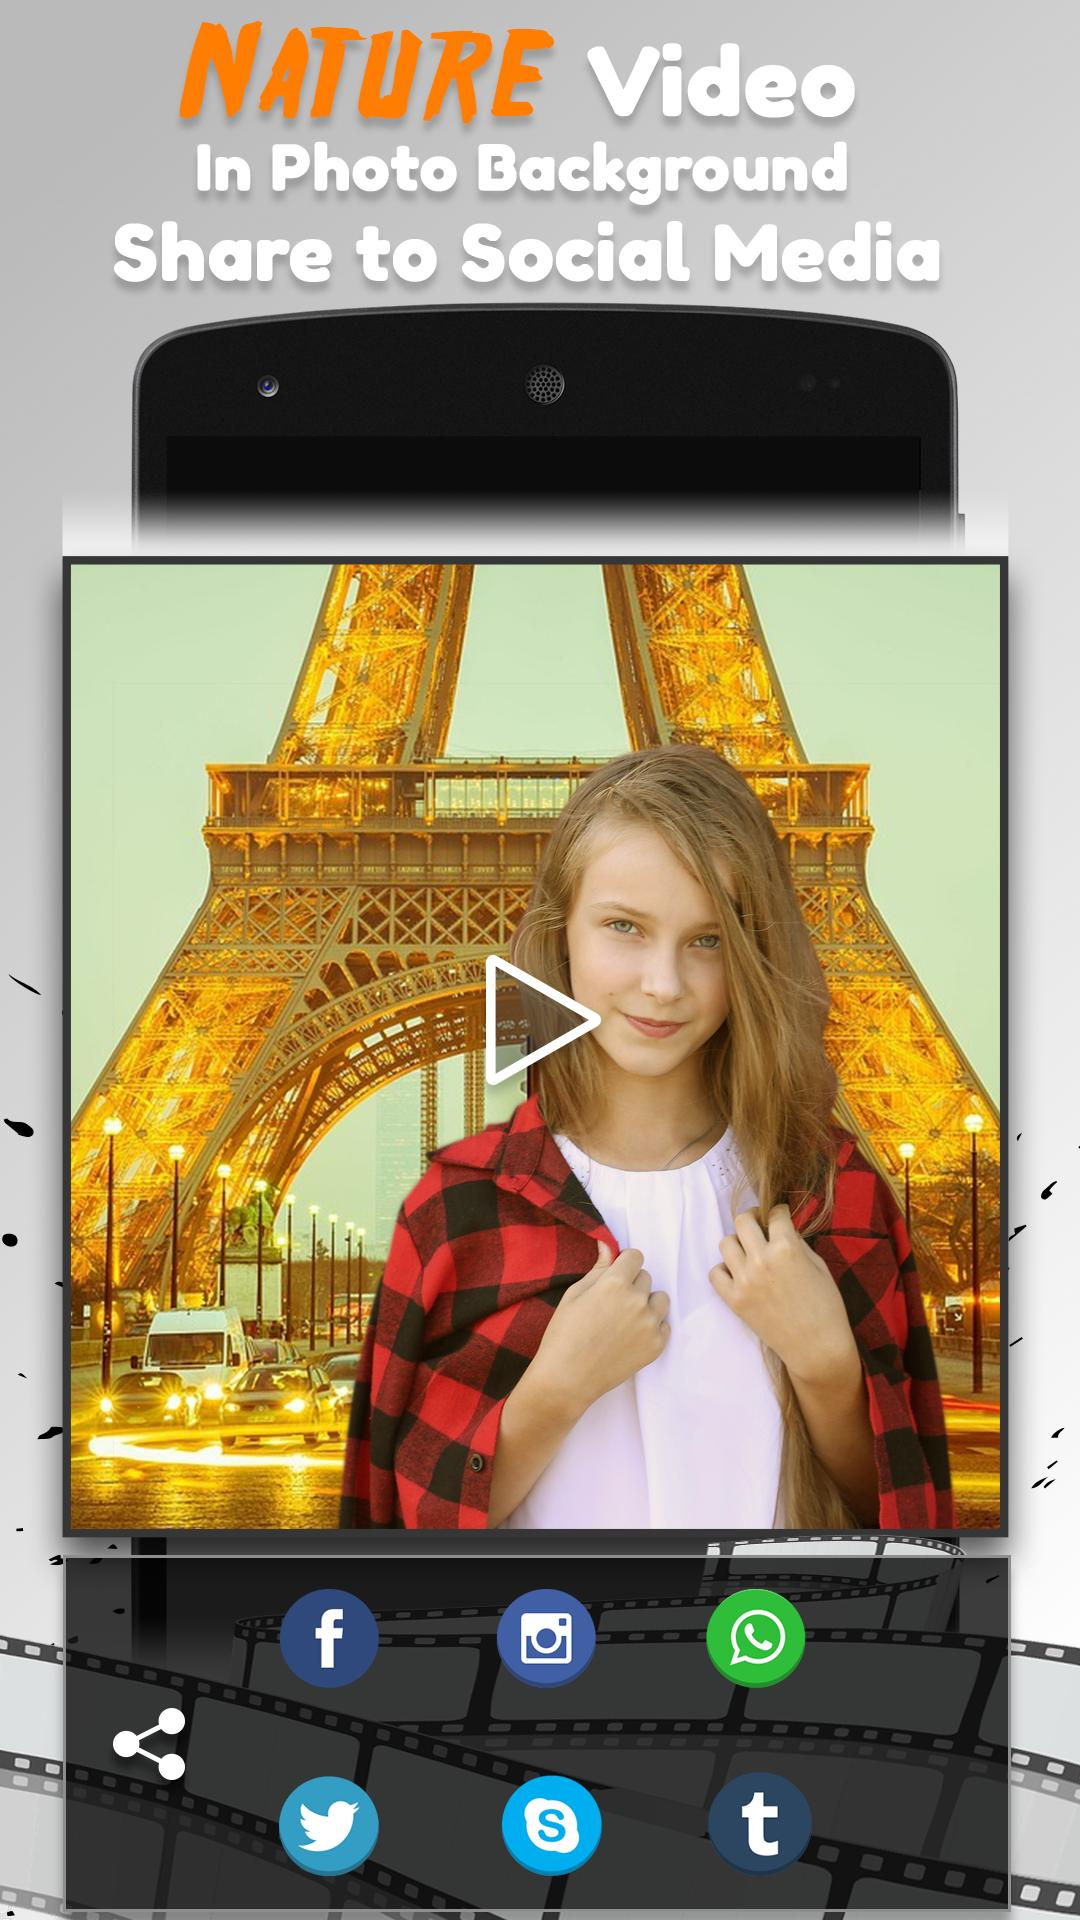 Alam Video Foto Latar Belakang Editor For Android Apk Download